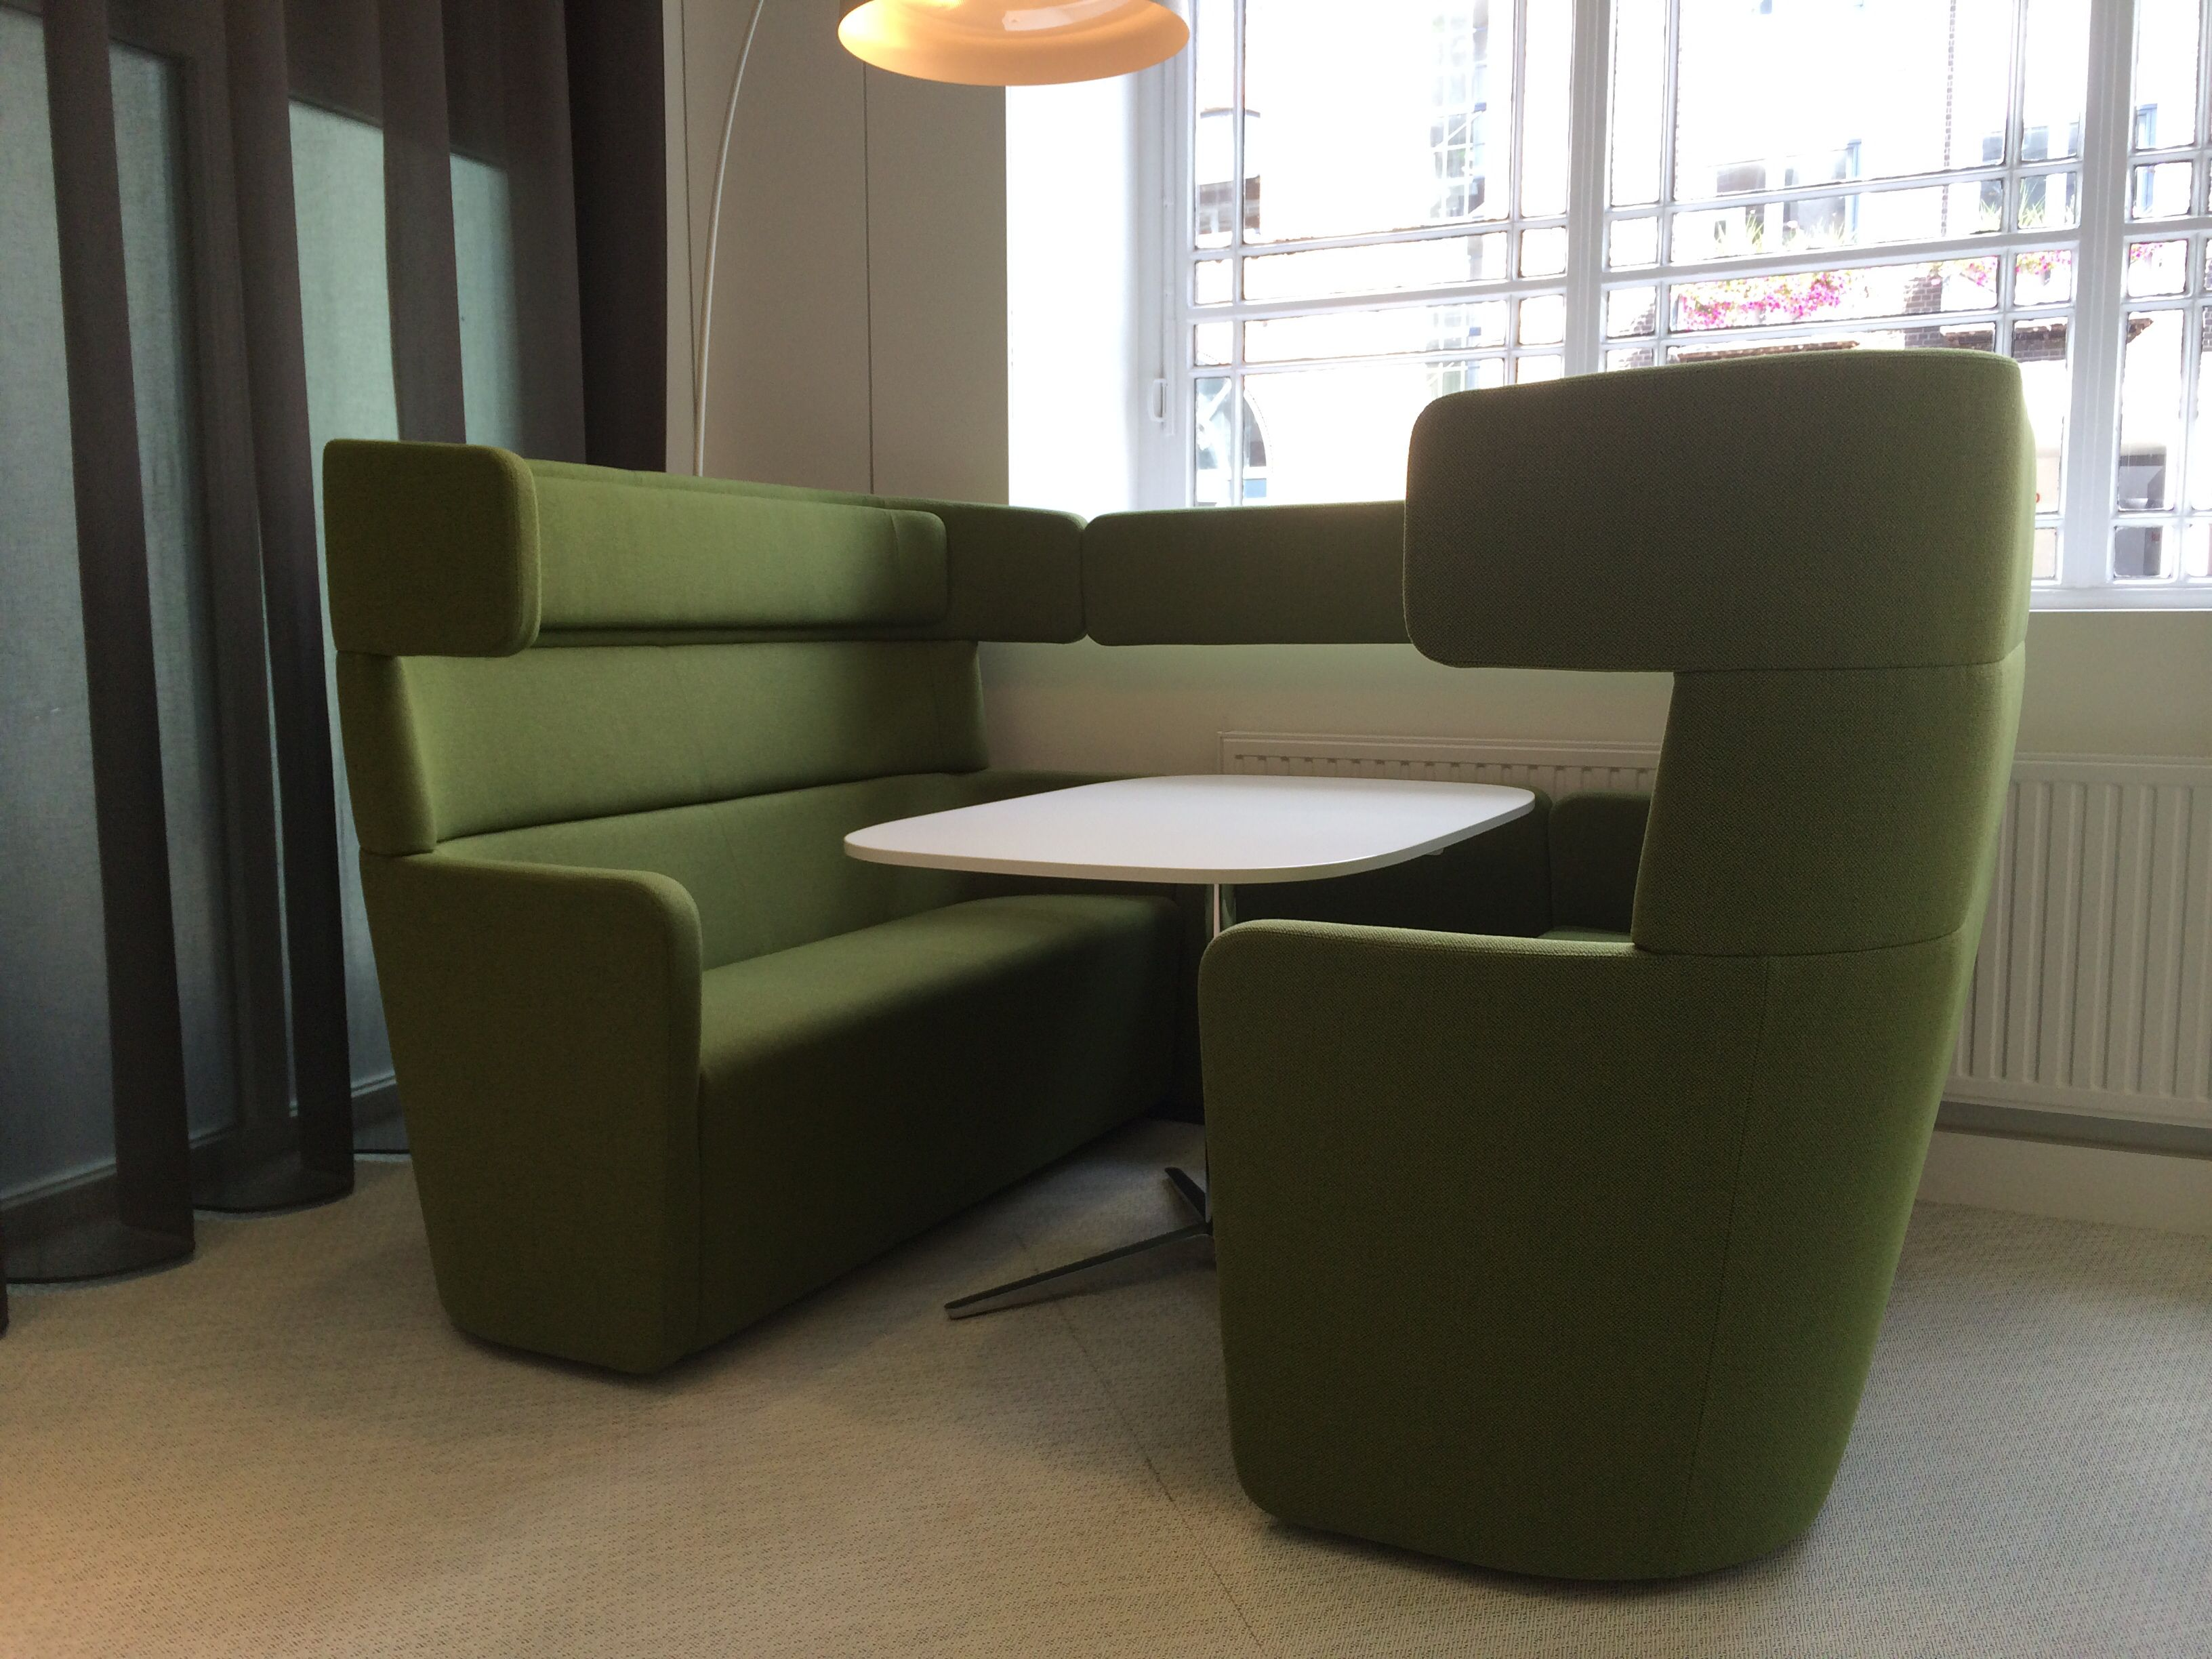 bene office furniture. 3rd Space Furniture From Bene. Parcs America Diner. An Attractive Room In Room. Bene Office O